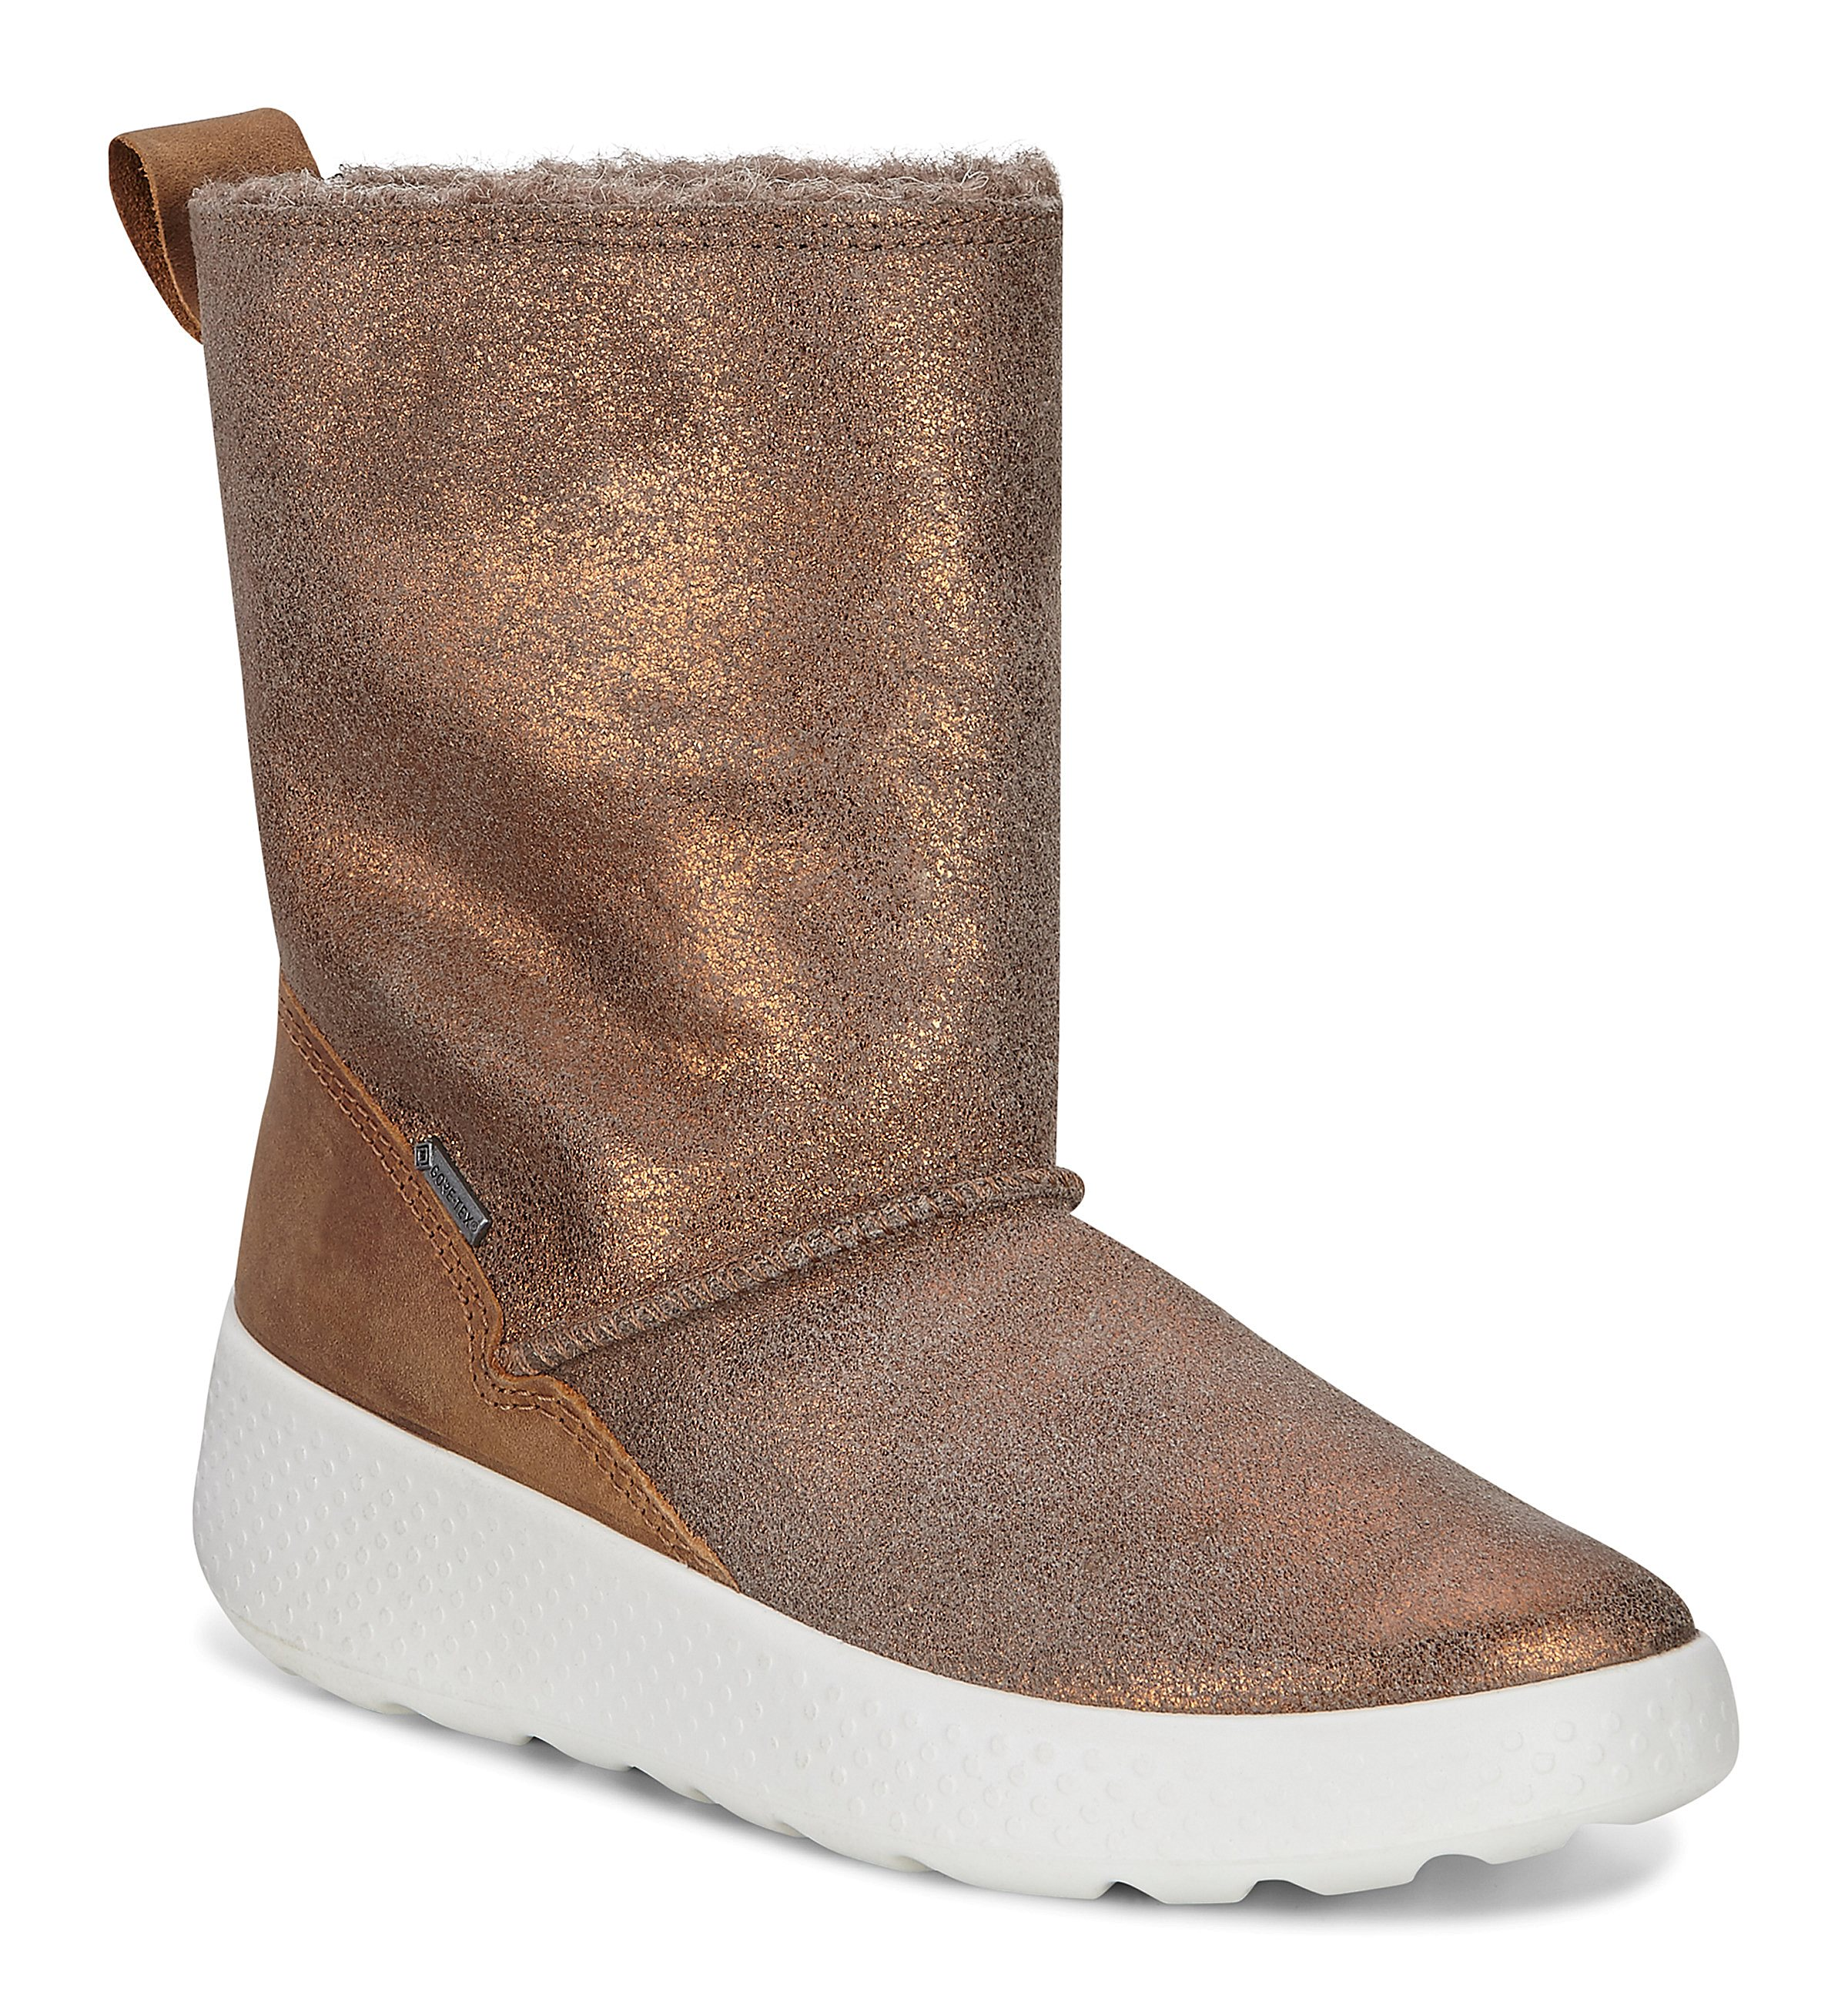 Girls' Boots | Buy from the Official